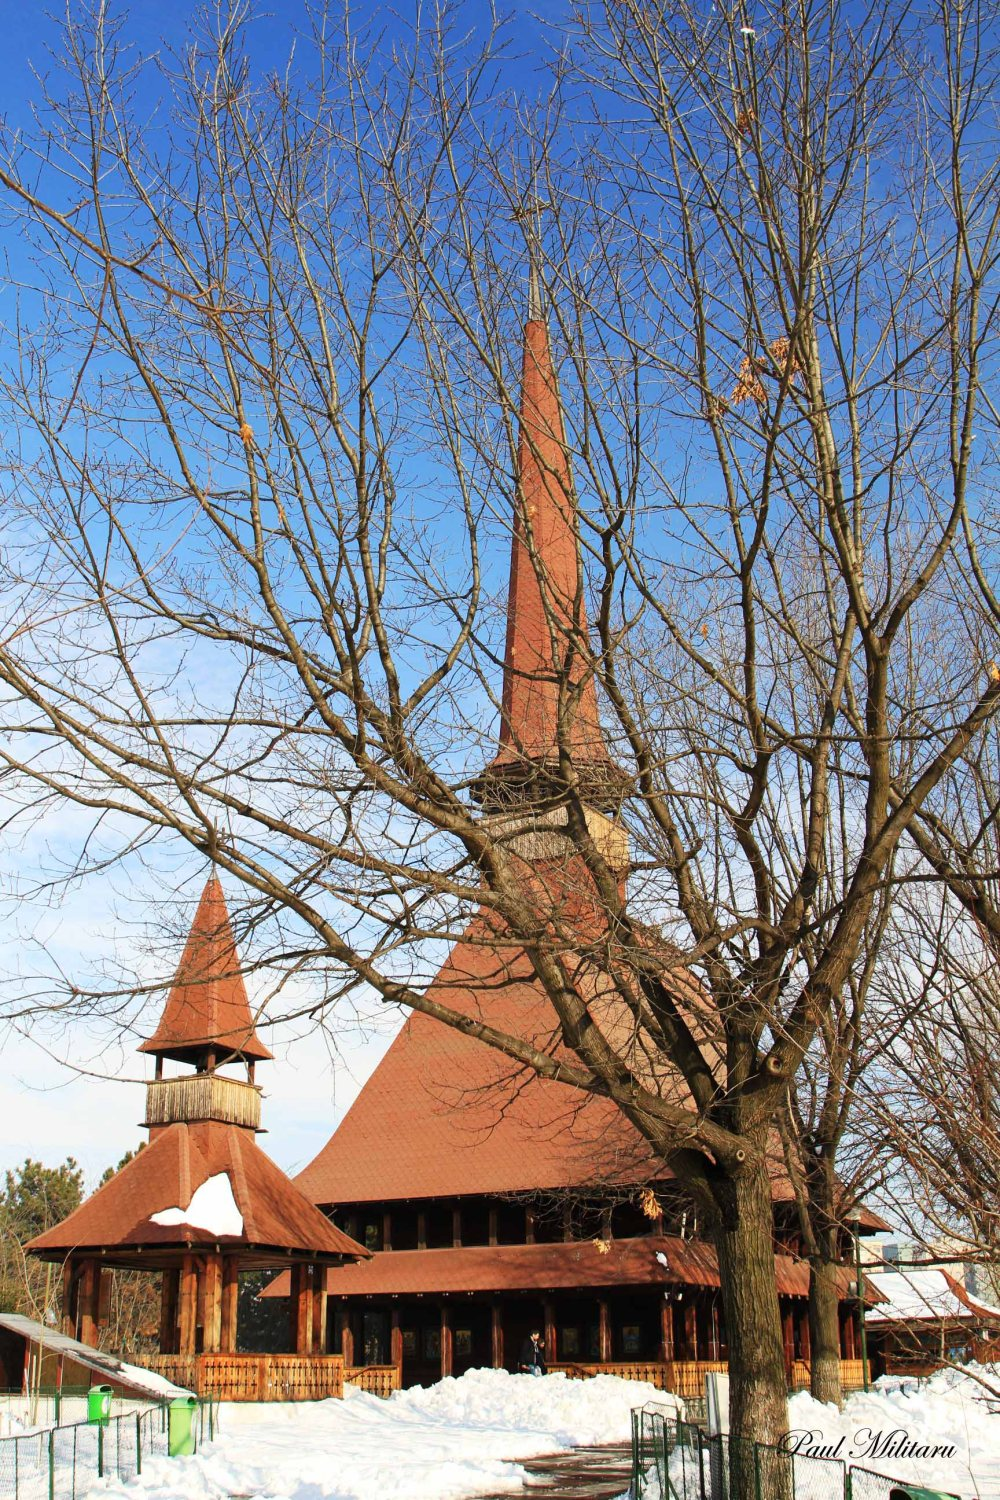 Maramures church made of wood